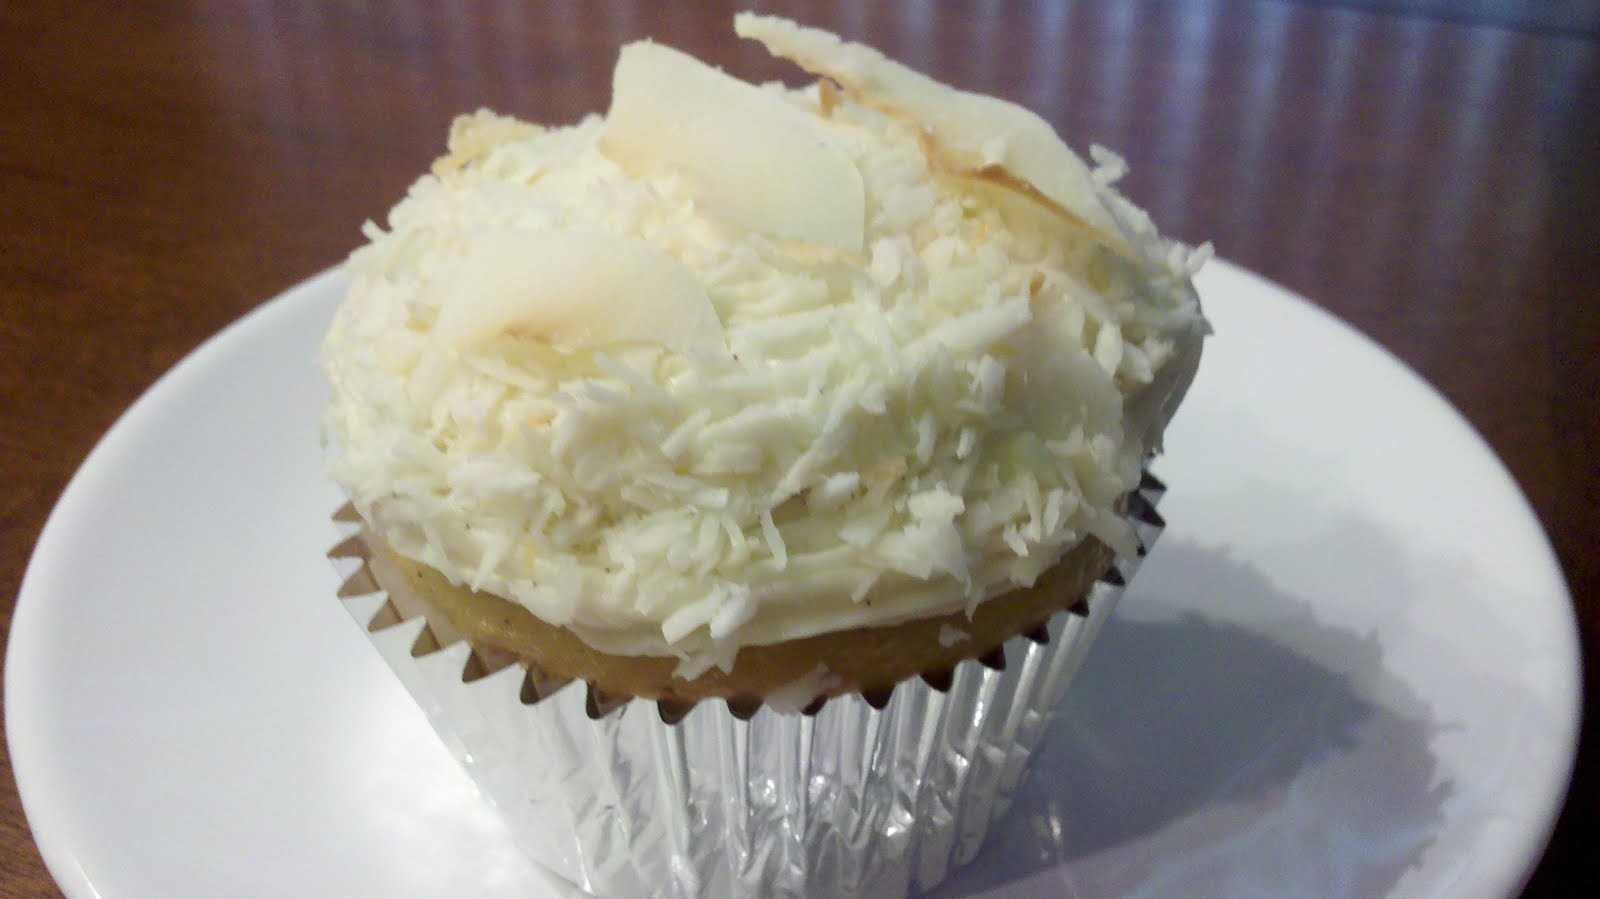 ... Vanilla Bean Cupcakes with Coconut Vanilla Bean Frosting & Toasted